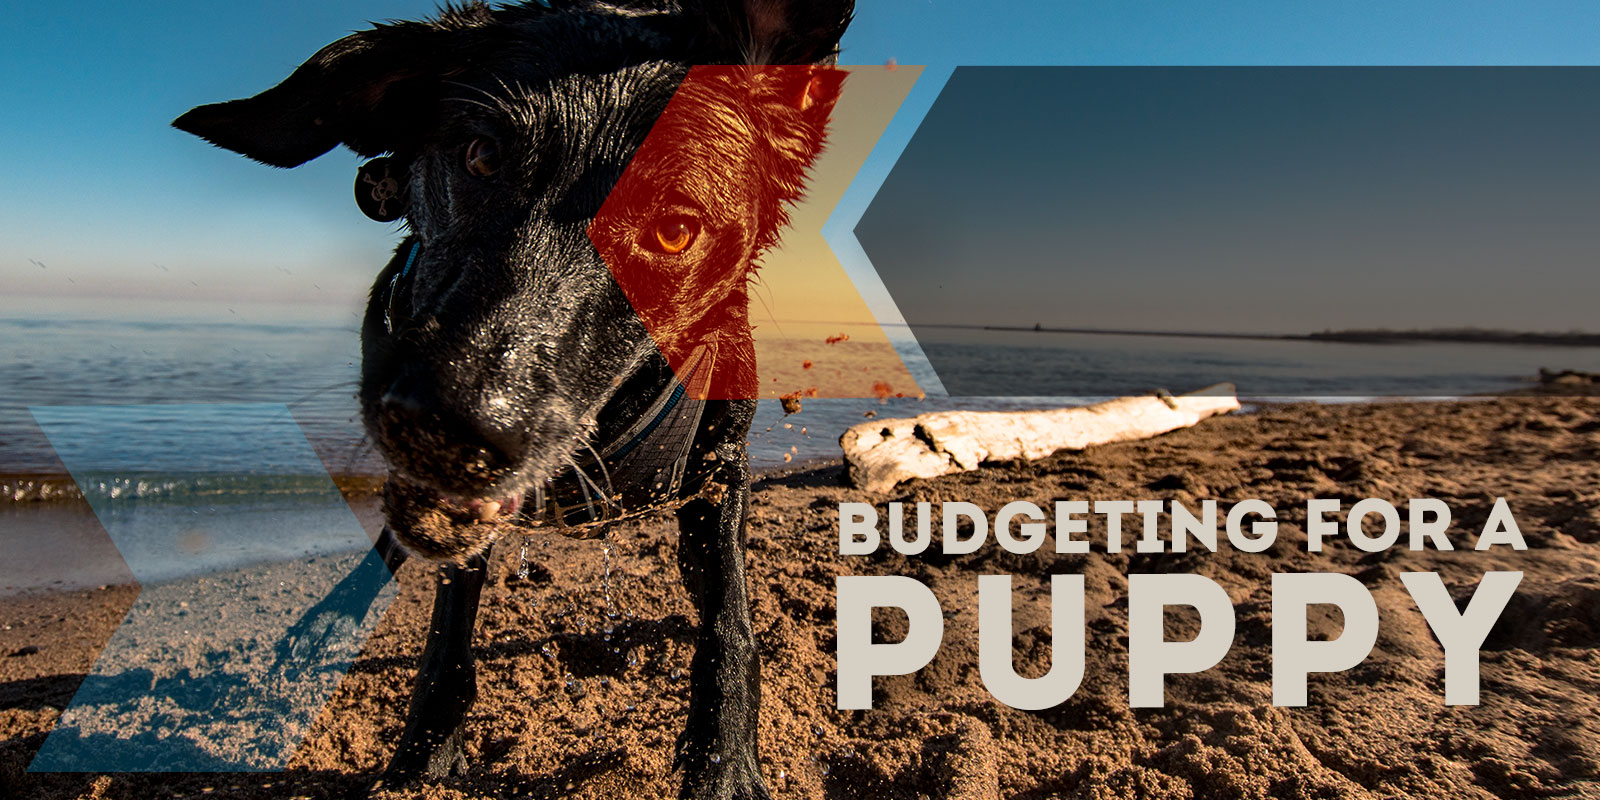 Budgeting for a Puppy